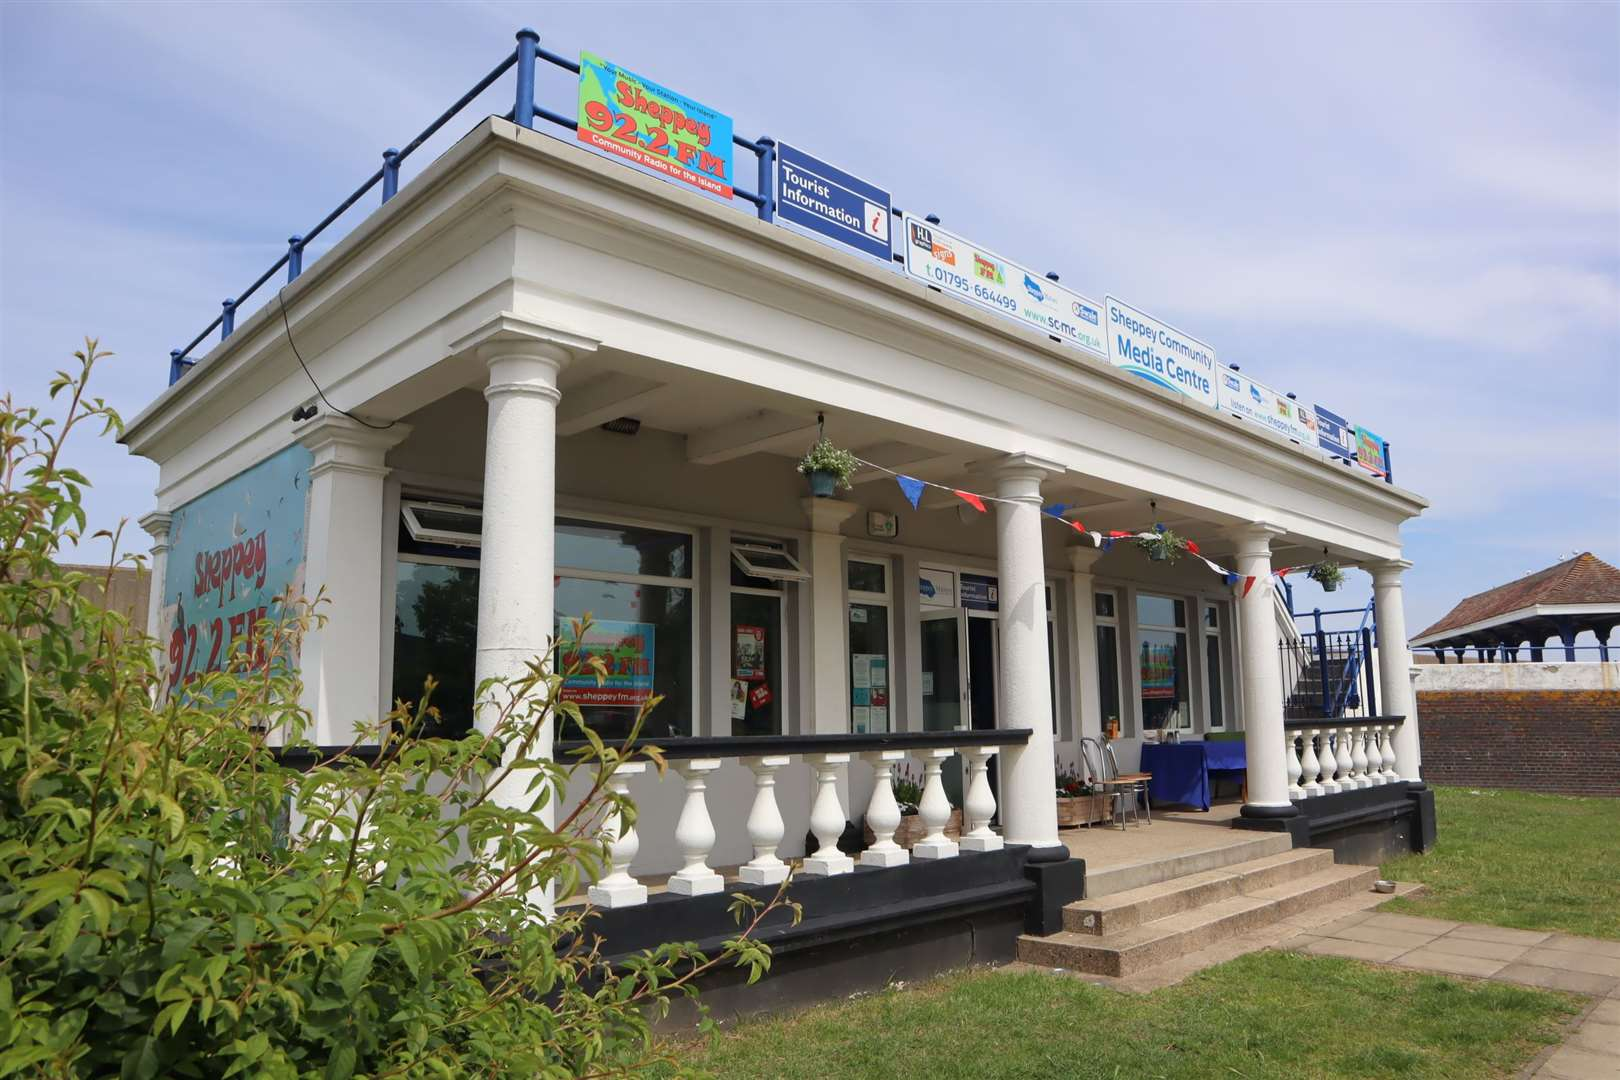 The new Tourist Information Centre in Sheerness. Picture: John Nurden